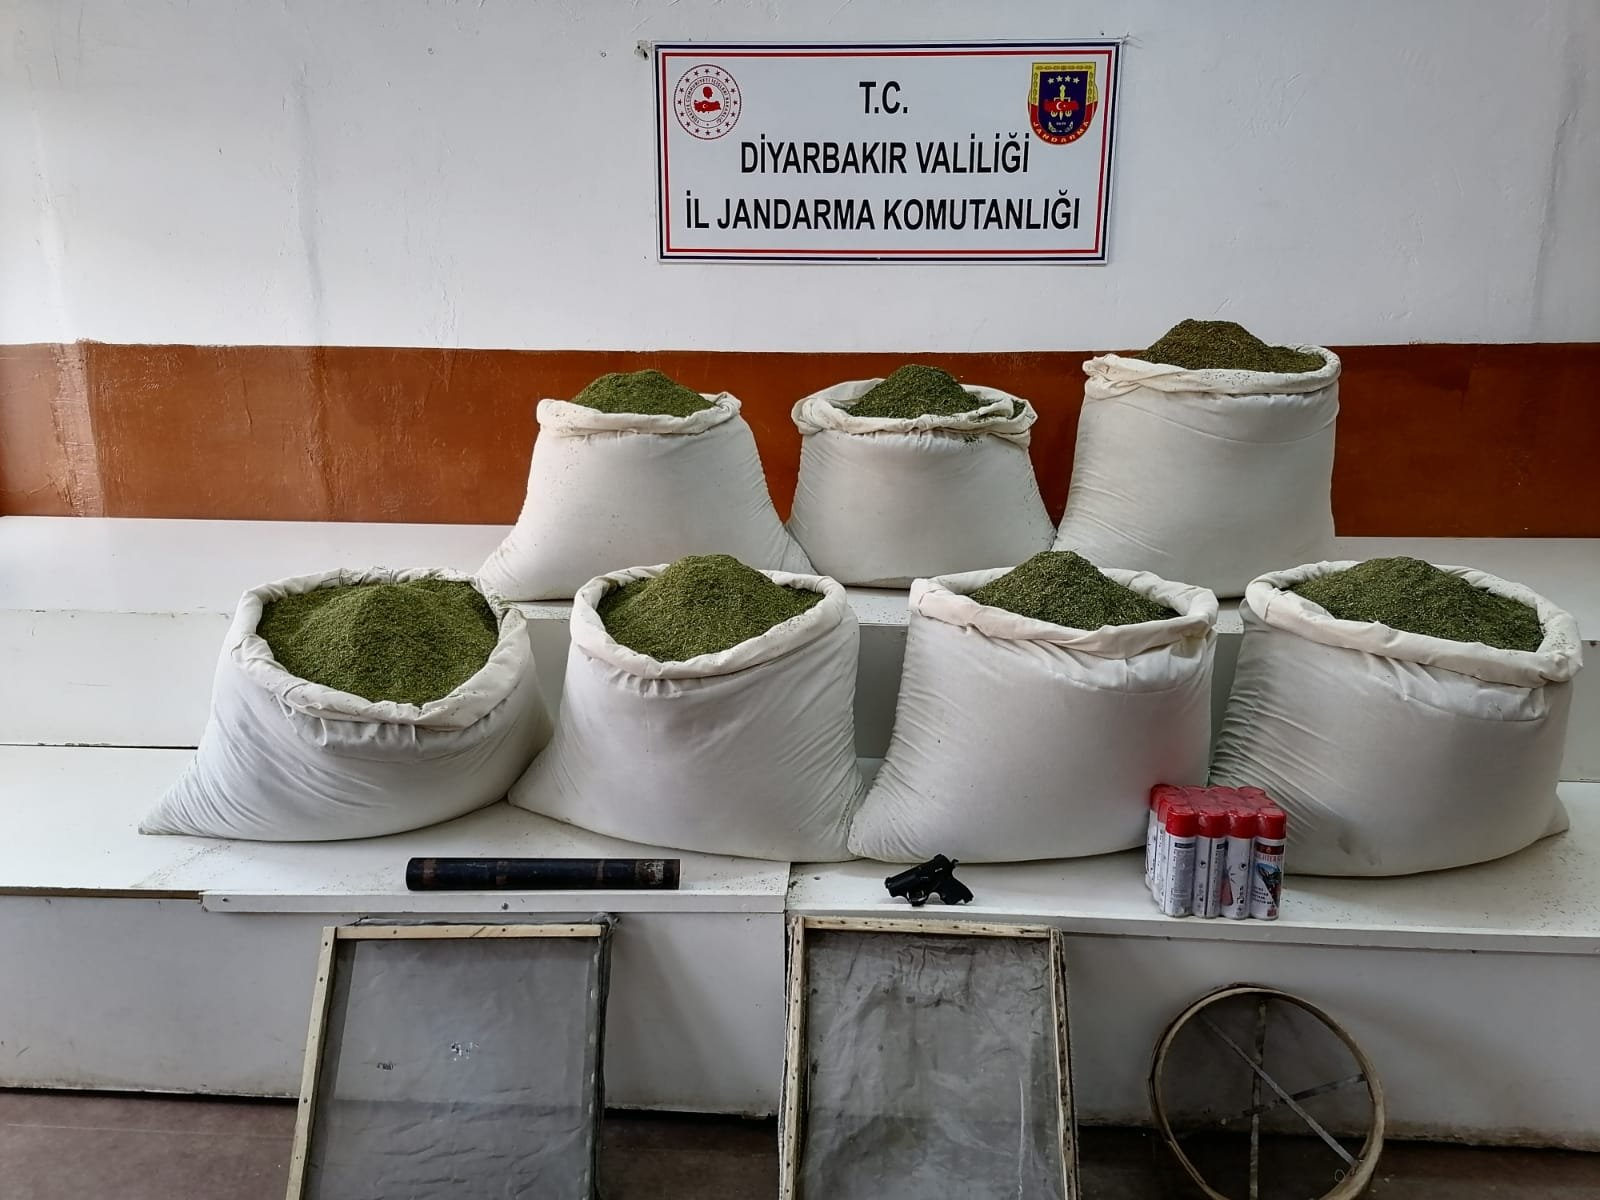 Seized marijuana on display at security forces headquarters in Diyarbakır, southeastern Turkey, Nov. 17, 2020. (AA Photo)